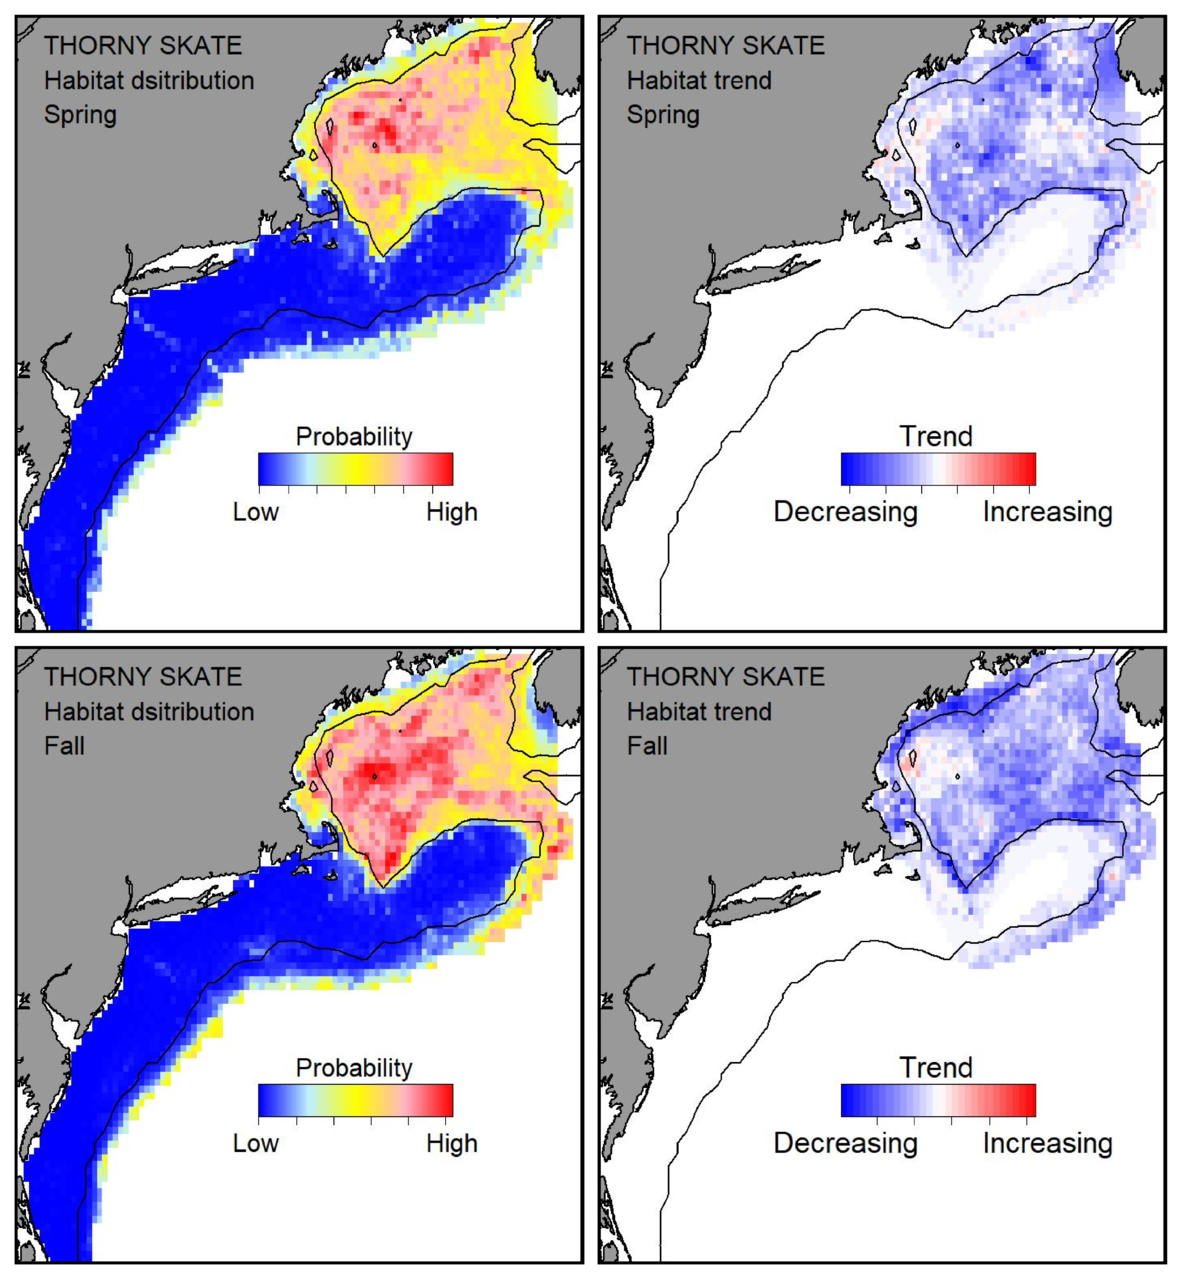 Top row: Probable habitat distribution for thorny skate showing the highest concentration and increasing trend in the Gulf of Maine during the spring. Bottom row: Probable habitat distribution for thorny skate showing the highest concentration and increasing trend in the Gulf of Maine during the fall.